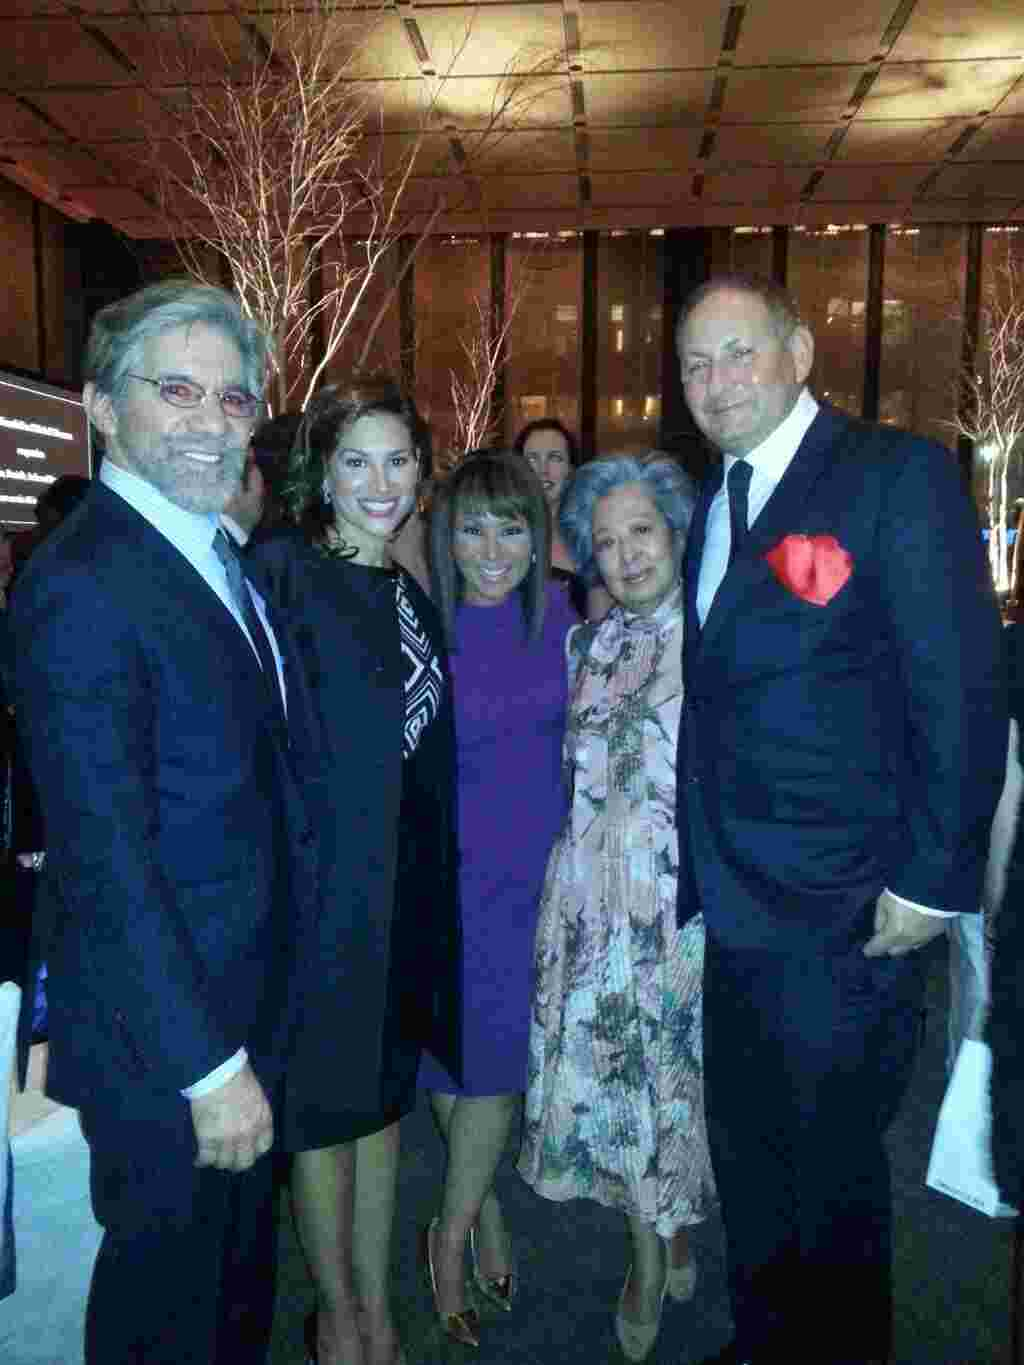 Geraldo with wife Erica friends Alina, Kim and John Dempsey.